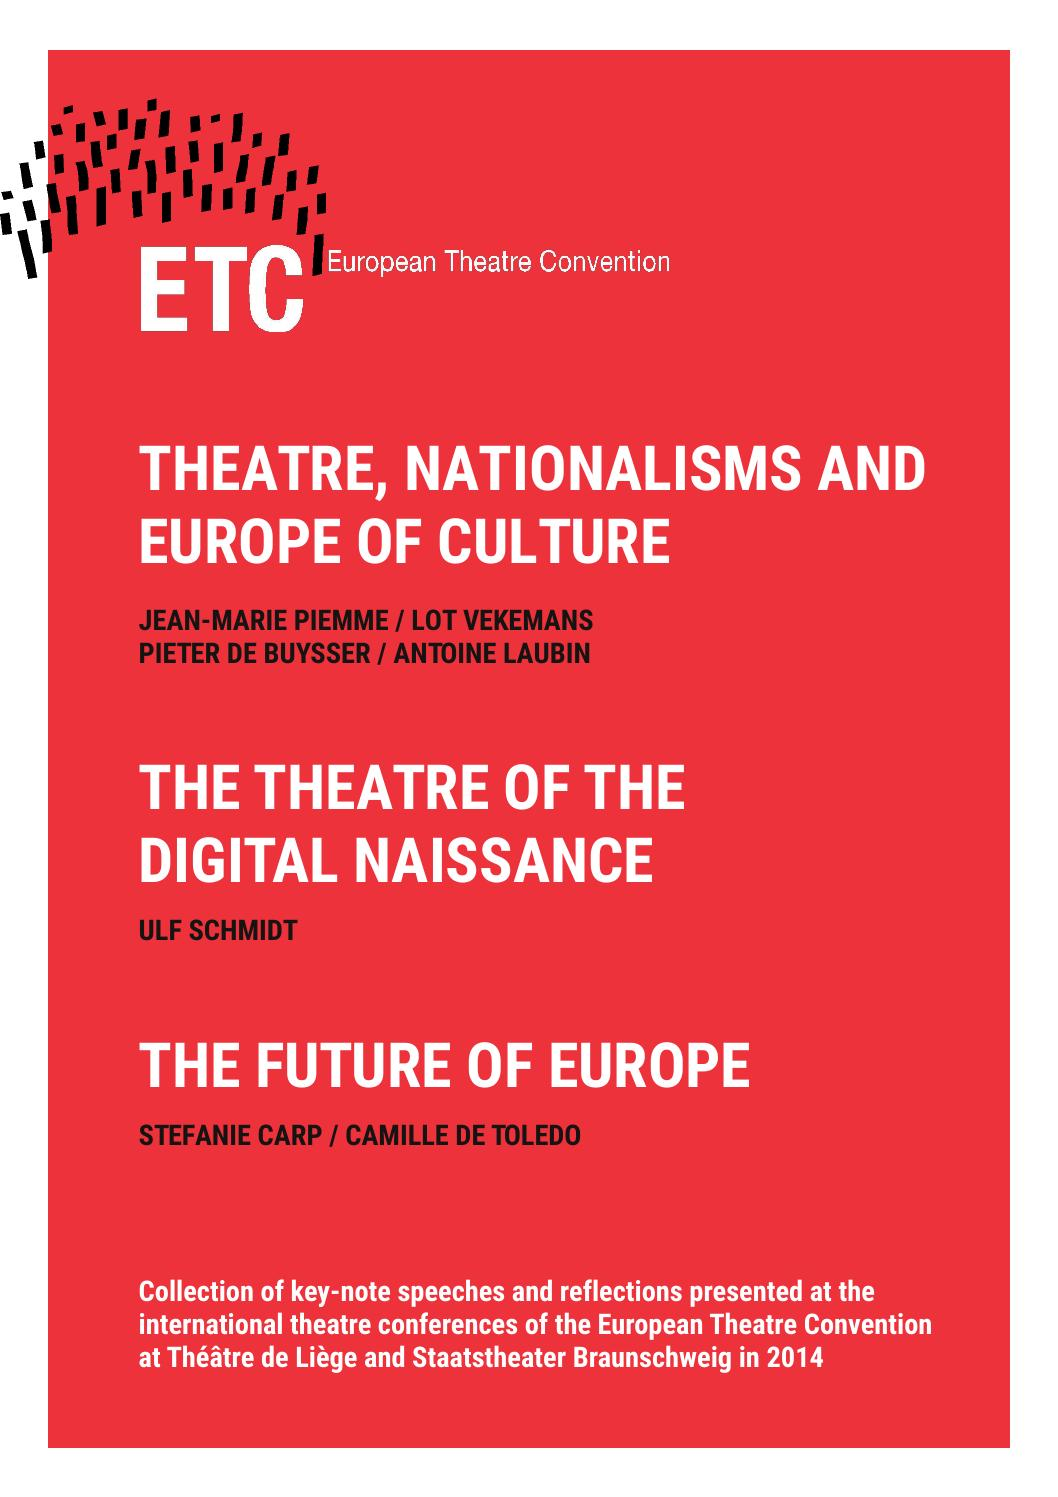 Renforce Conference Utrecht Collection Of Key Note Speeches 2014 By European Theatre Convention